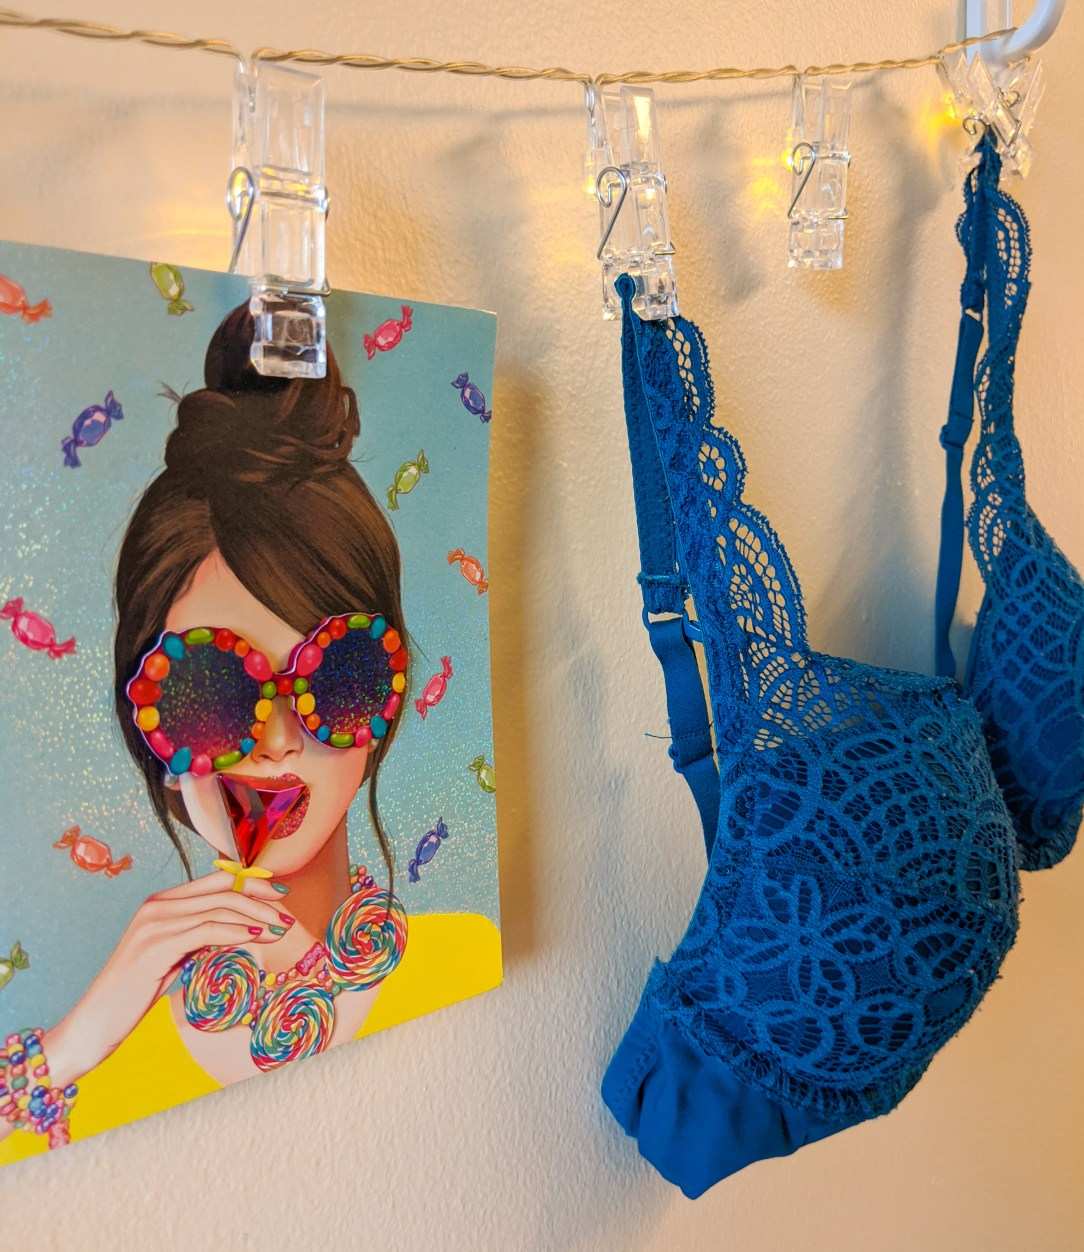 lace bras, card collection, Papyrus, Hallmark cards